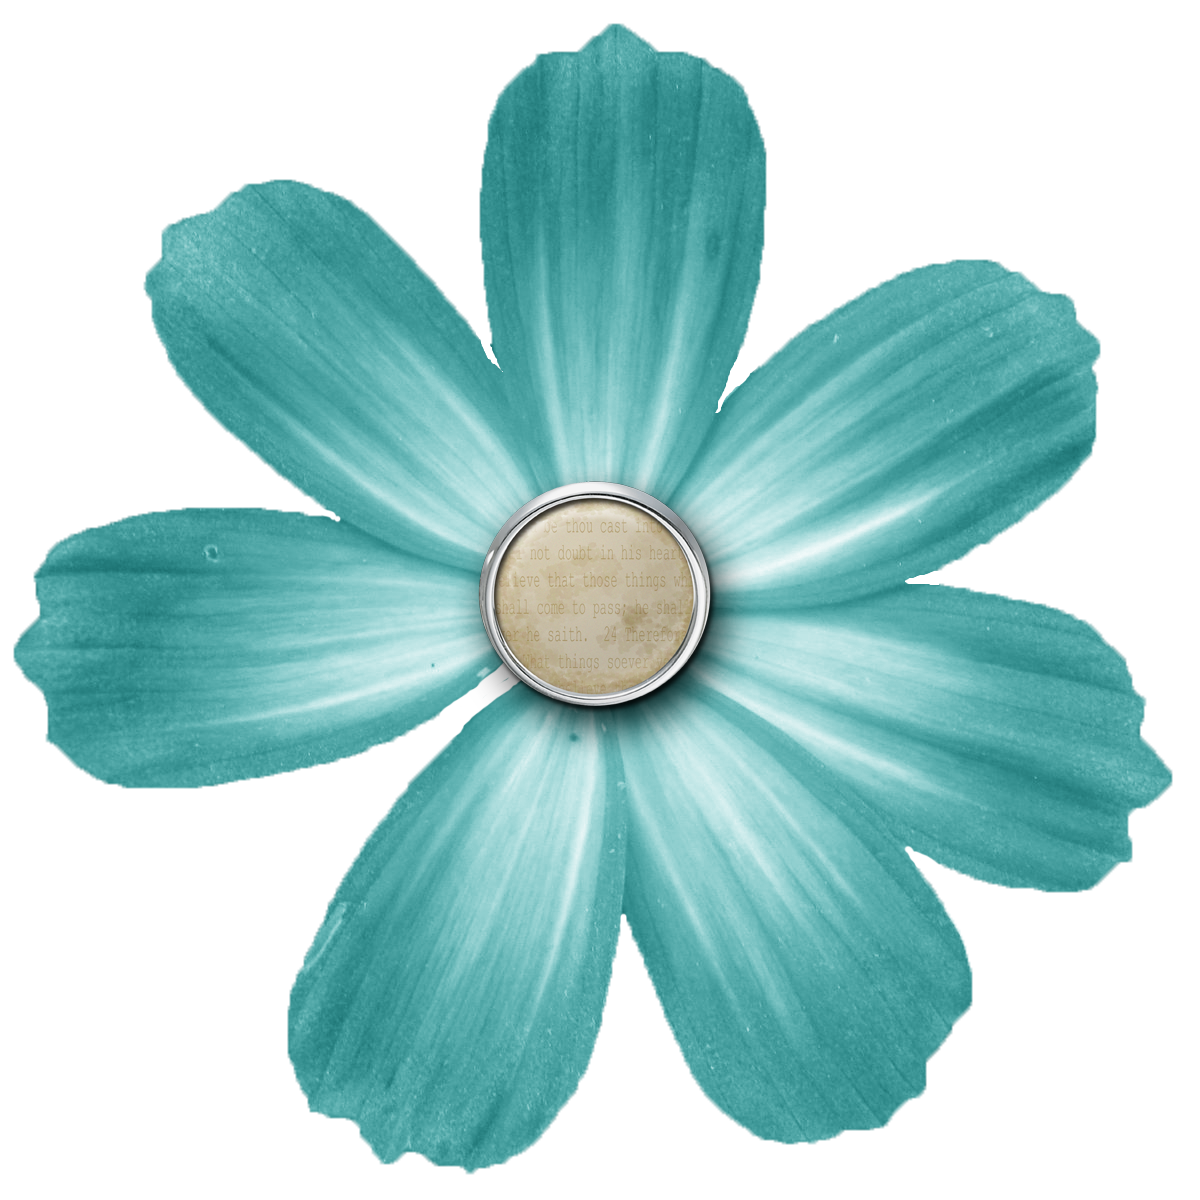 Turquoise flower png. Cropped brad fl teal